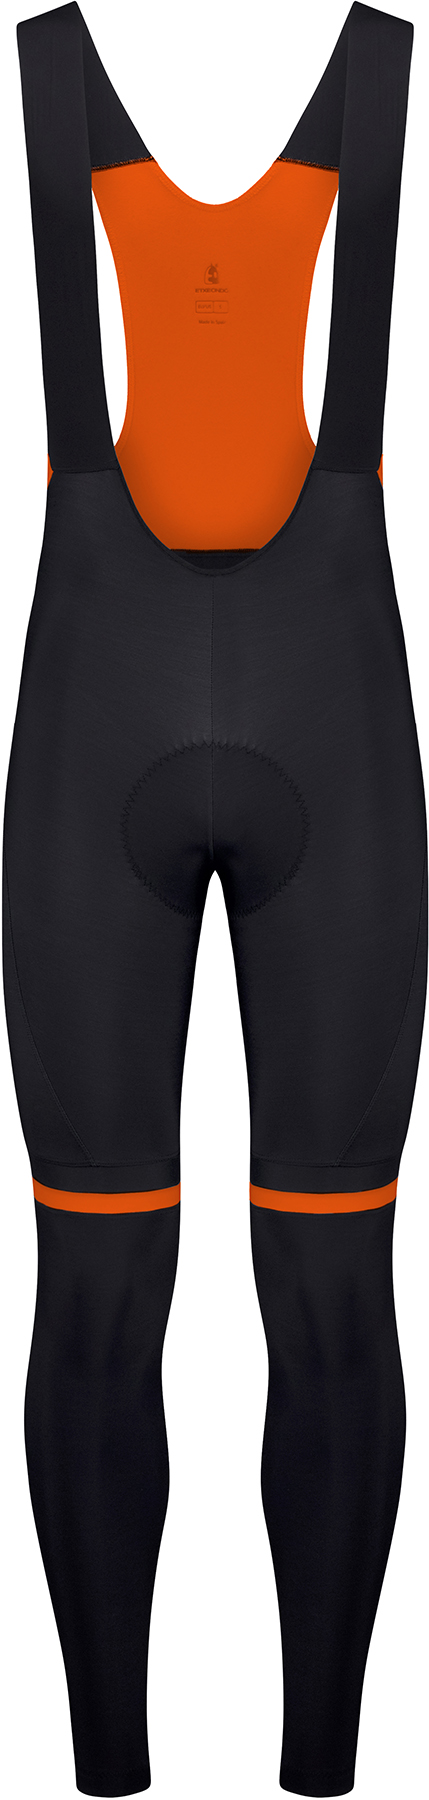 Etxeondo Kom Bib Tights | Trousers